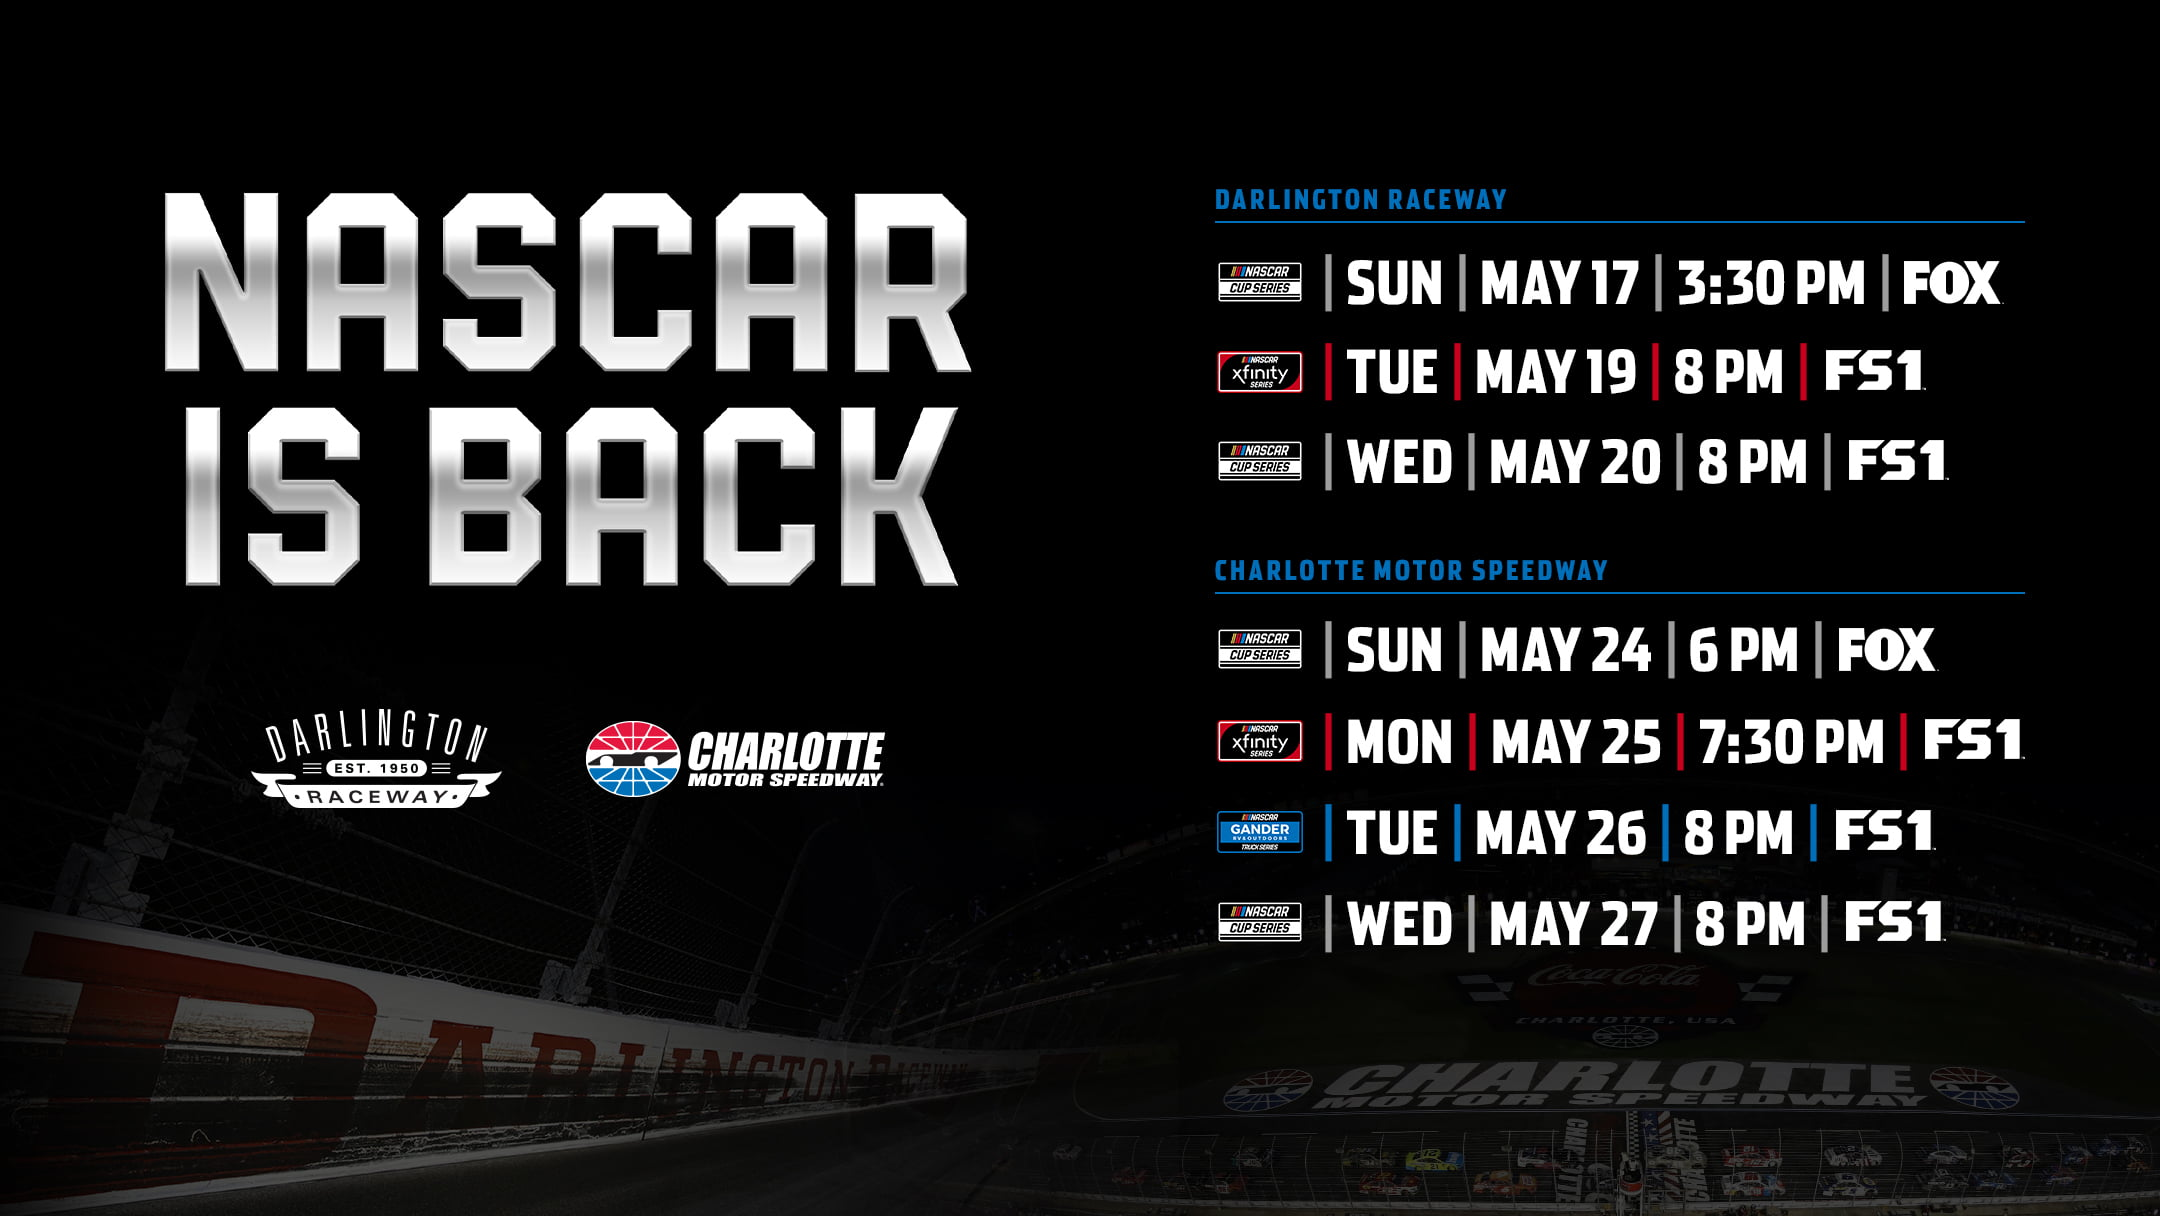 NASCAR To Return To Racing This Month